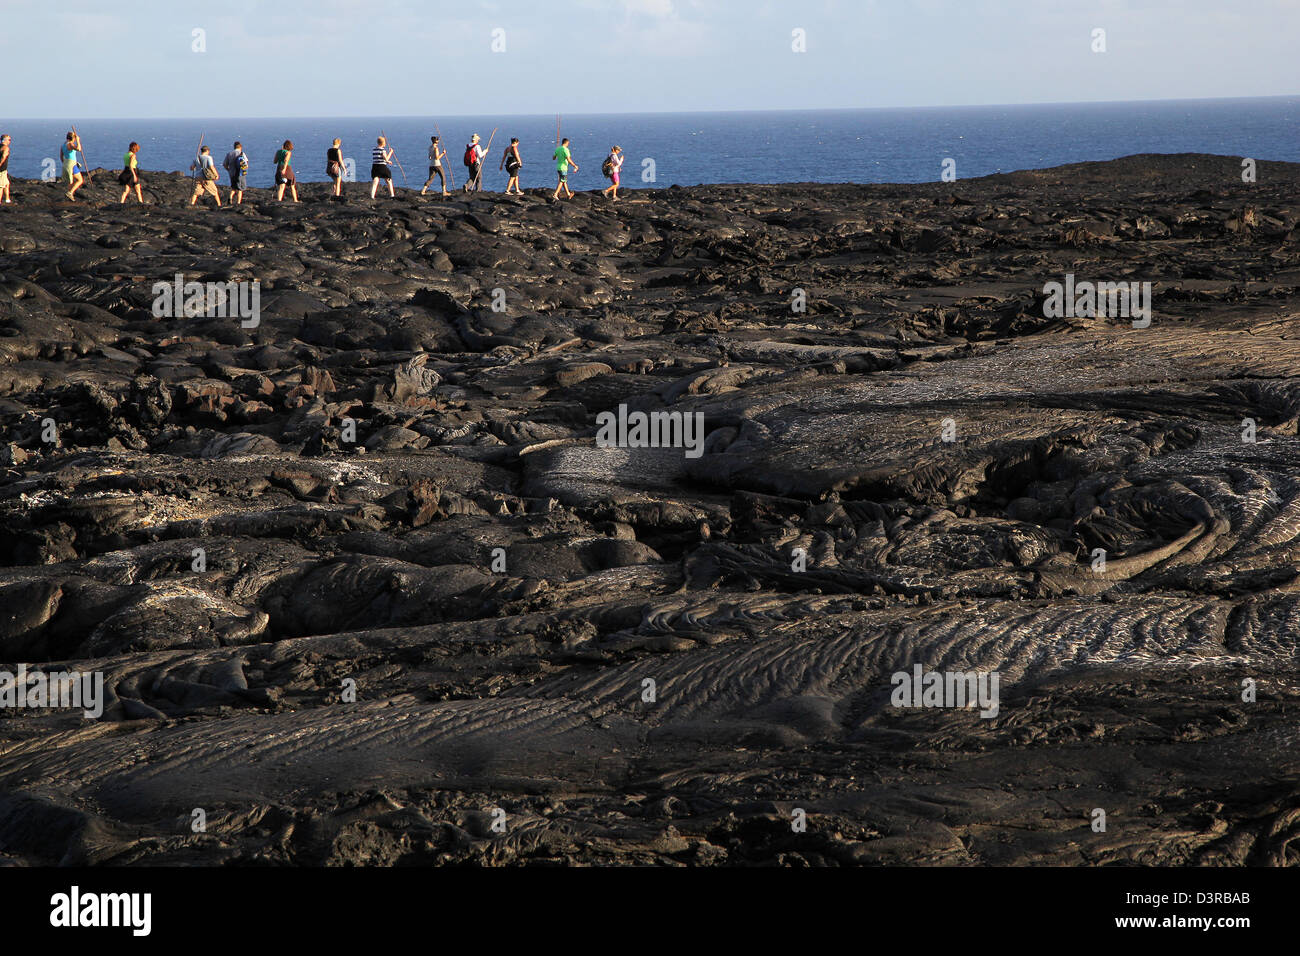 hikers on recent Pahoehoe lava from Kilauea Volcano Hawaii - Stock Image